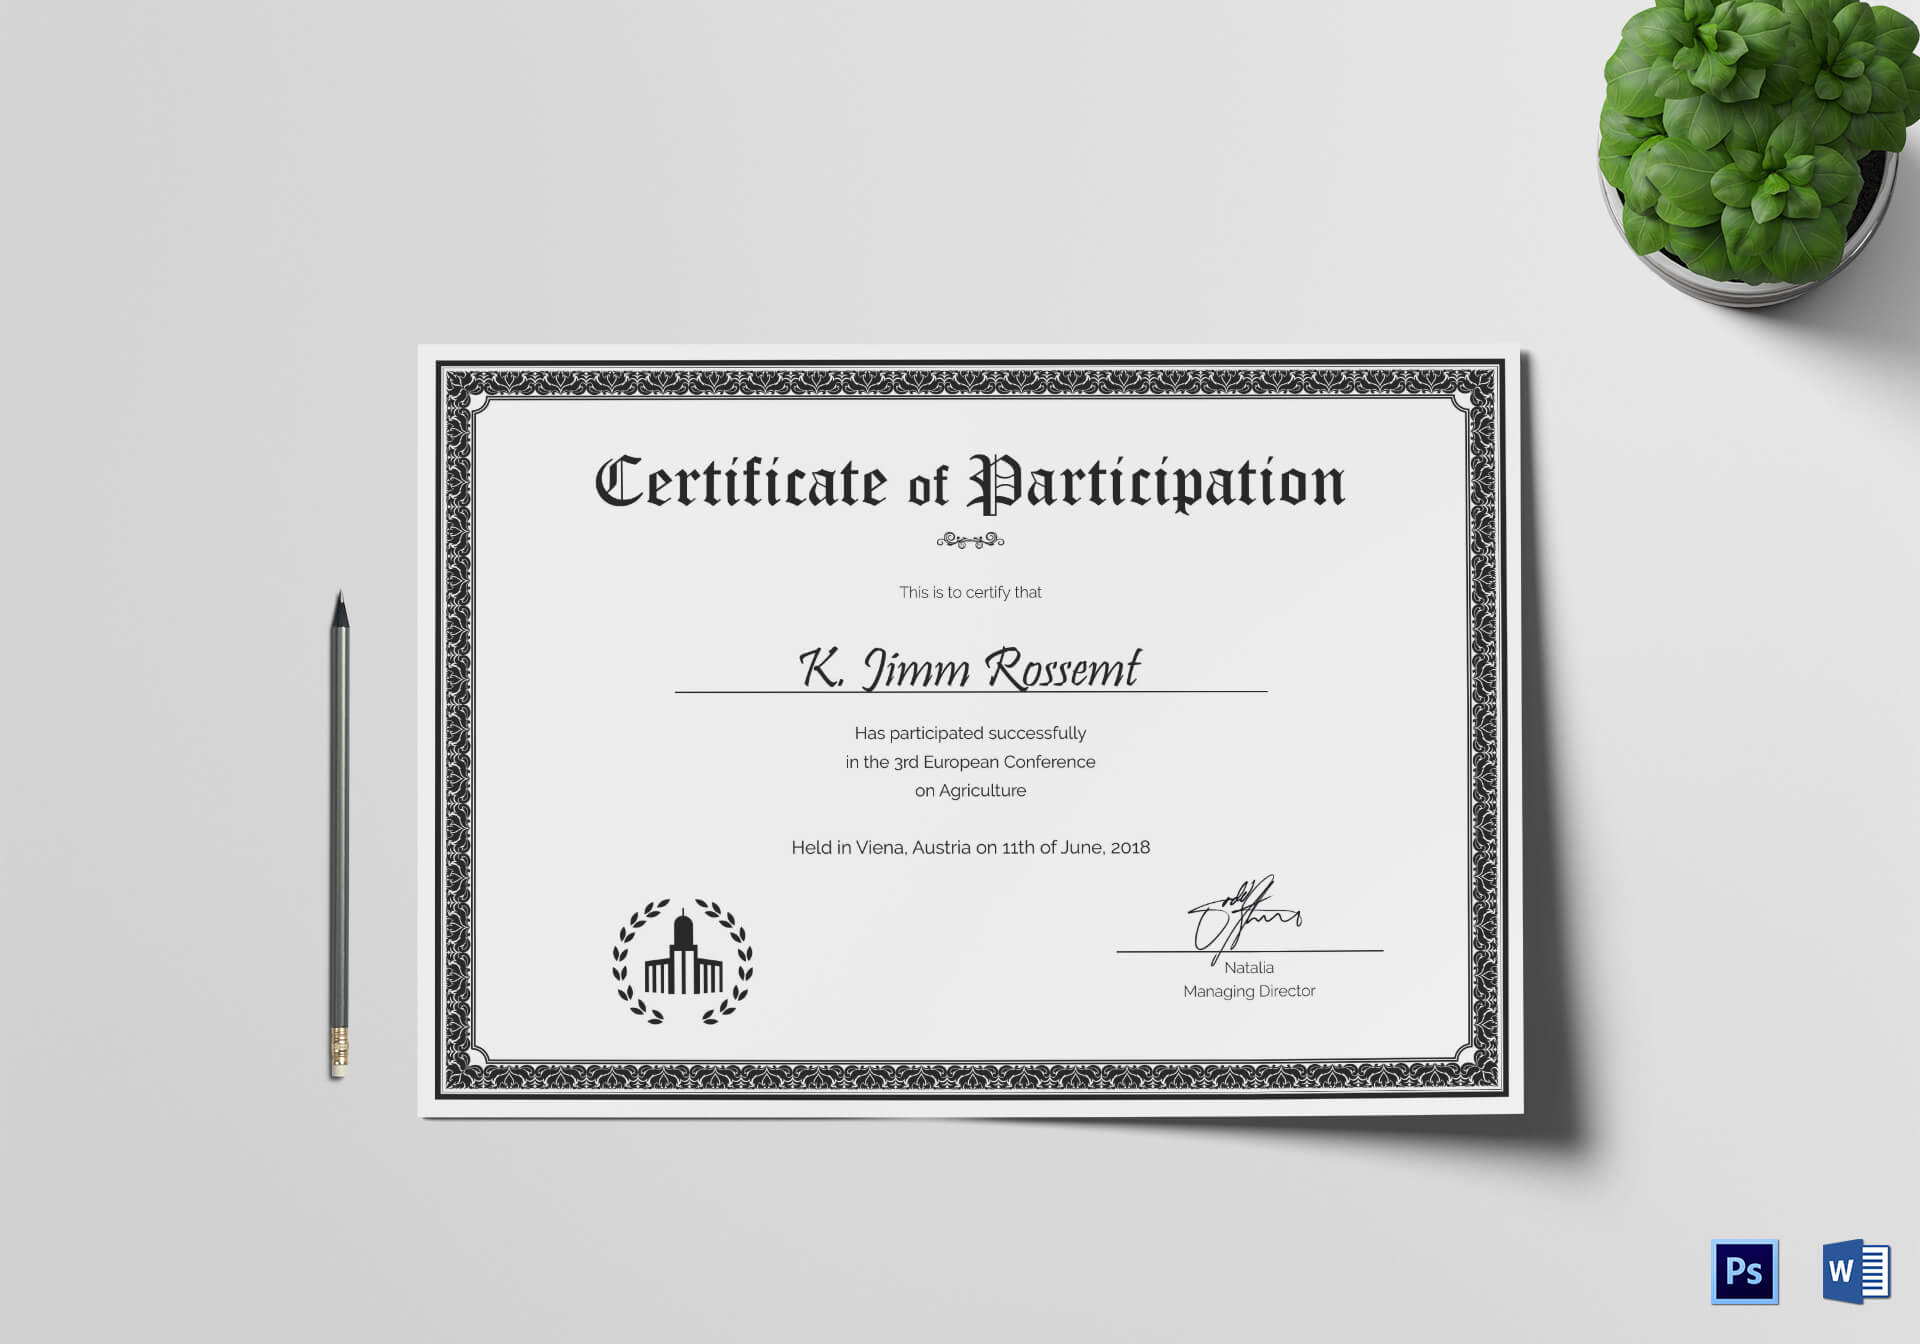 Conference Participation Certificate Template Within Conference Participation Certificate Template